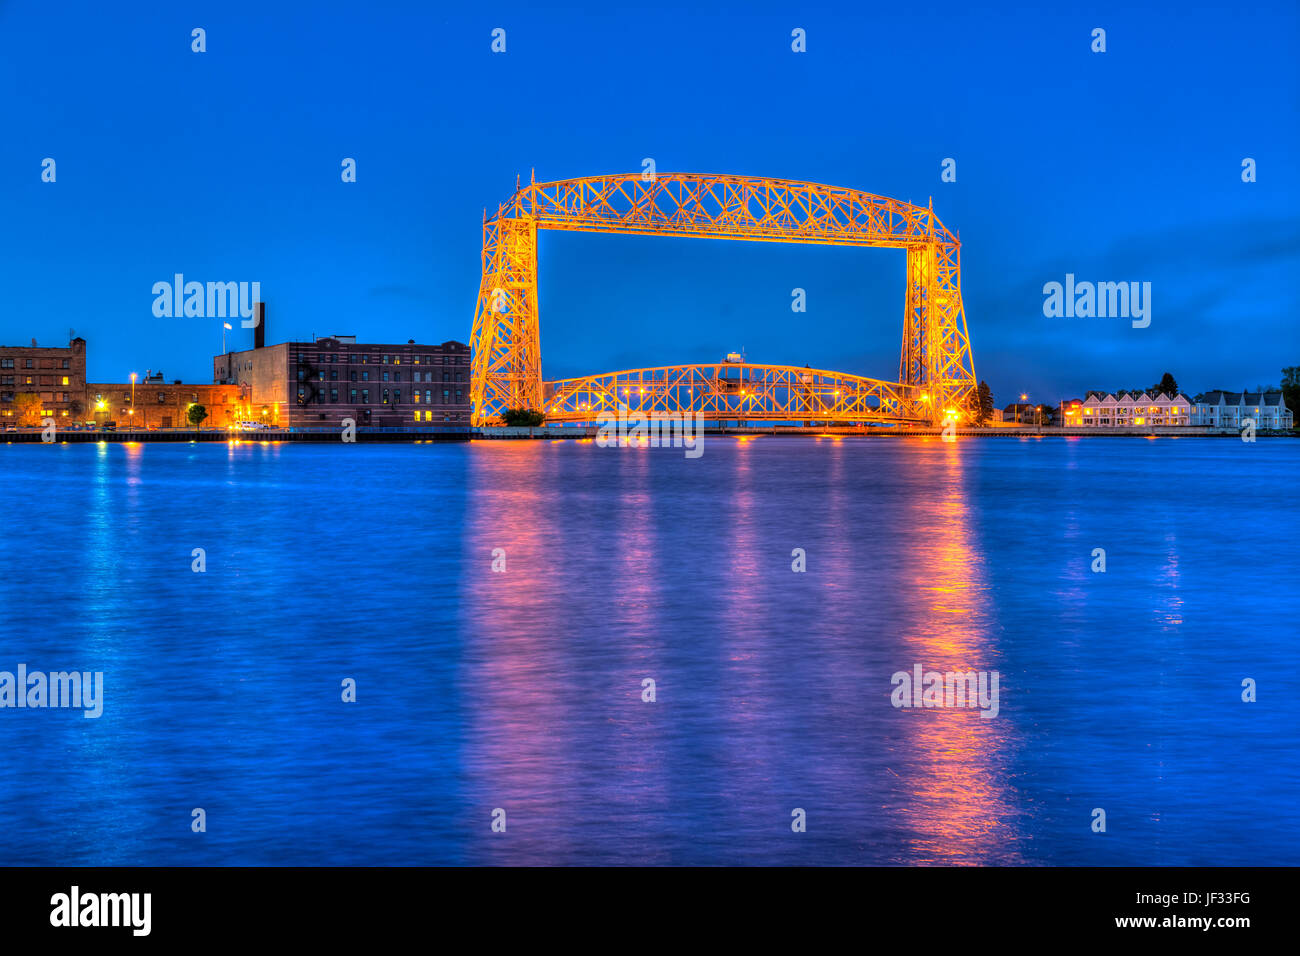 The aerial lift bridge and Canal Park in Duluth, Minnesota, USA - Stock Image